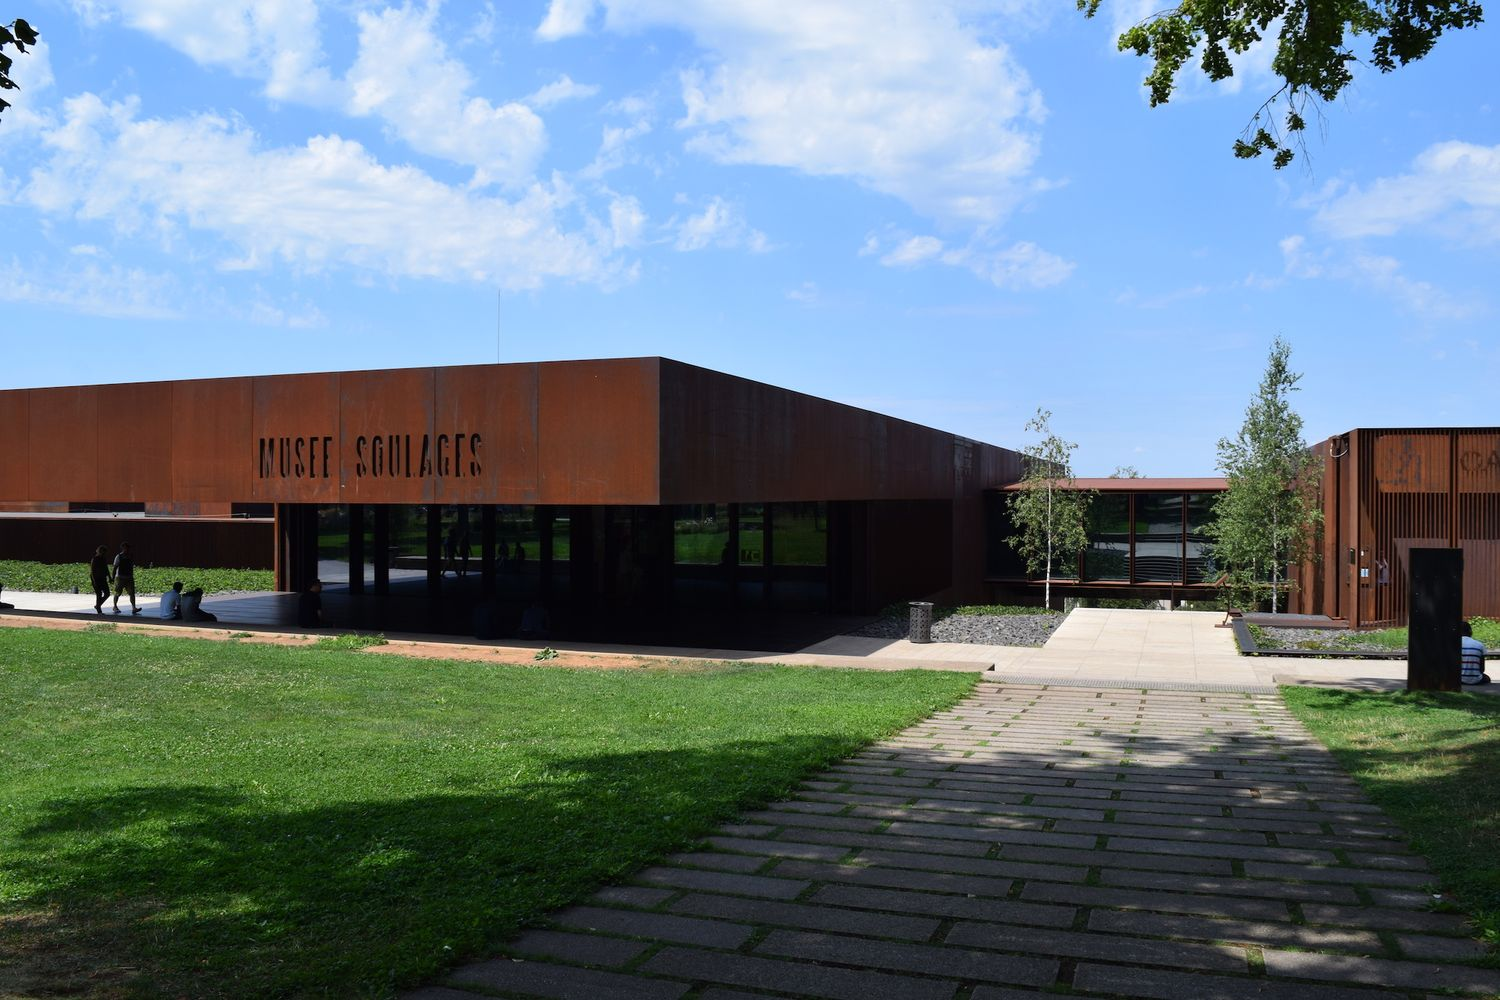 Visit the Musée Soulages in Rodez